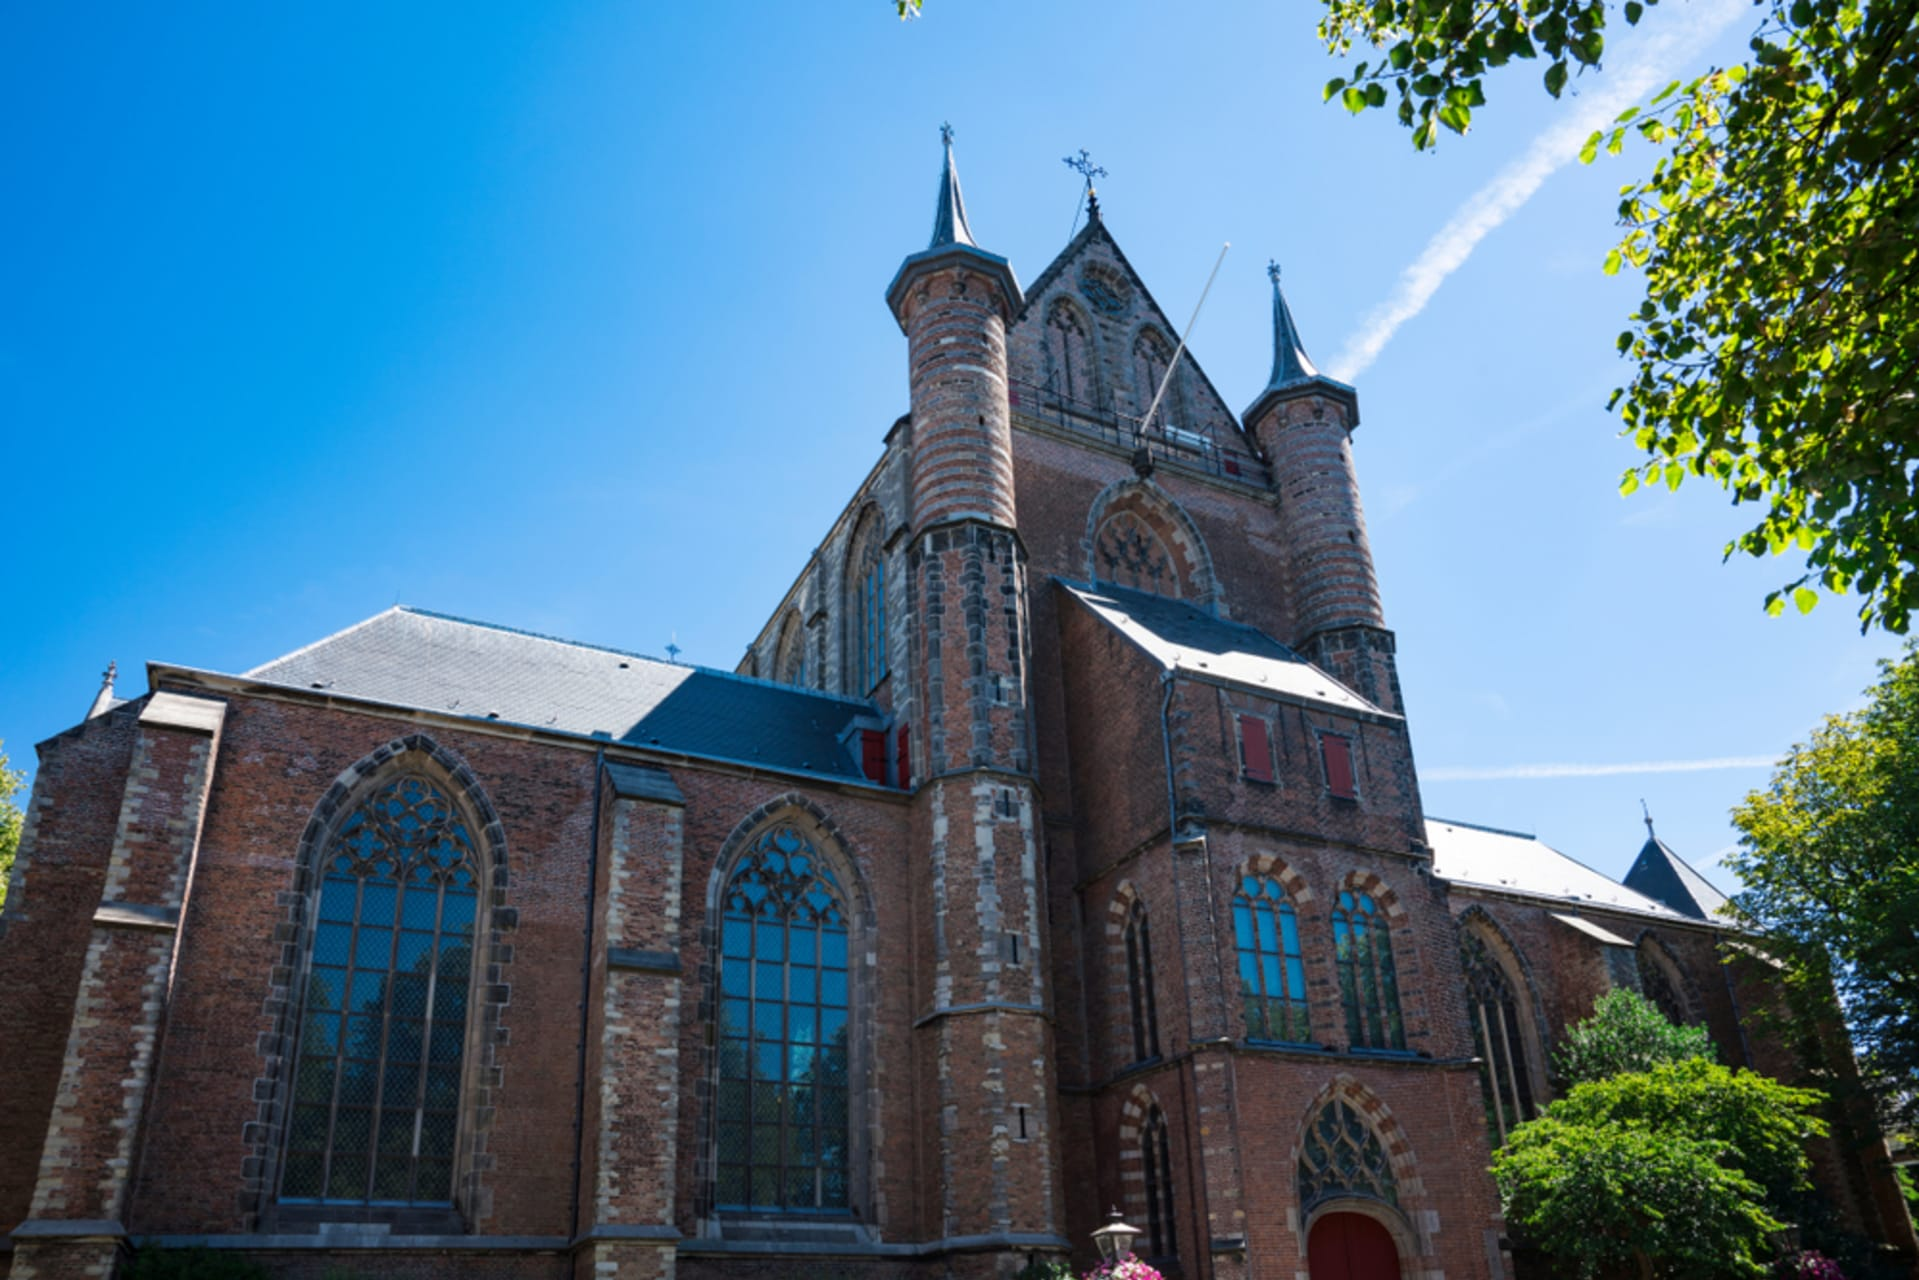 Leiden - Cradle of the Dutch Tulip, City of Science, Home of young Rembrandt